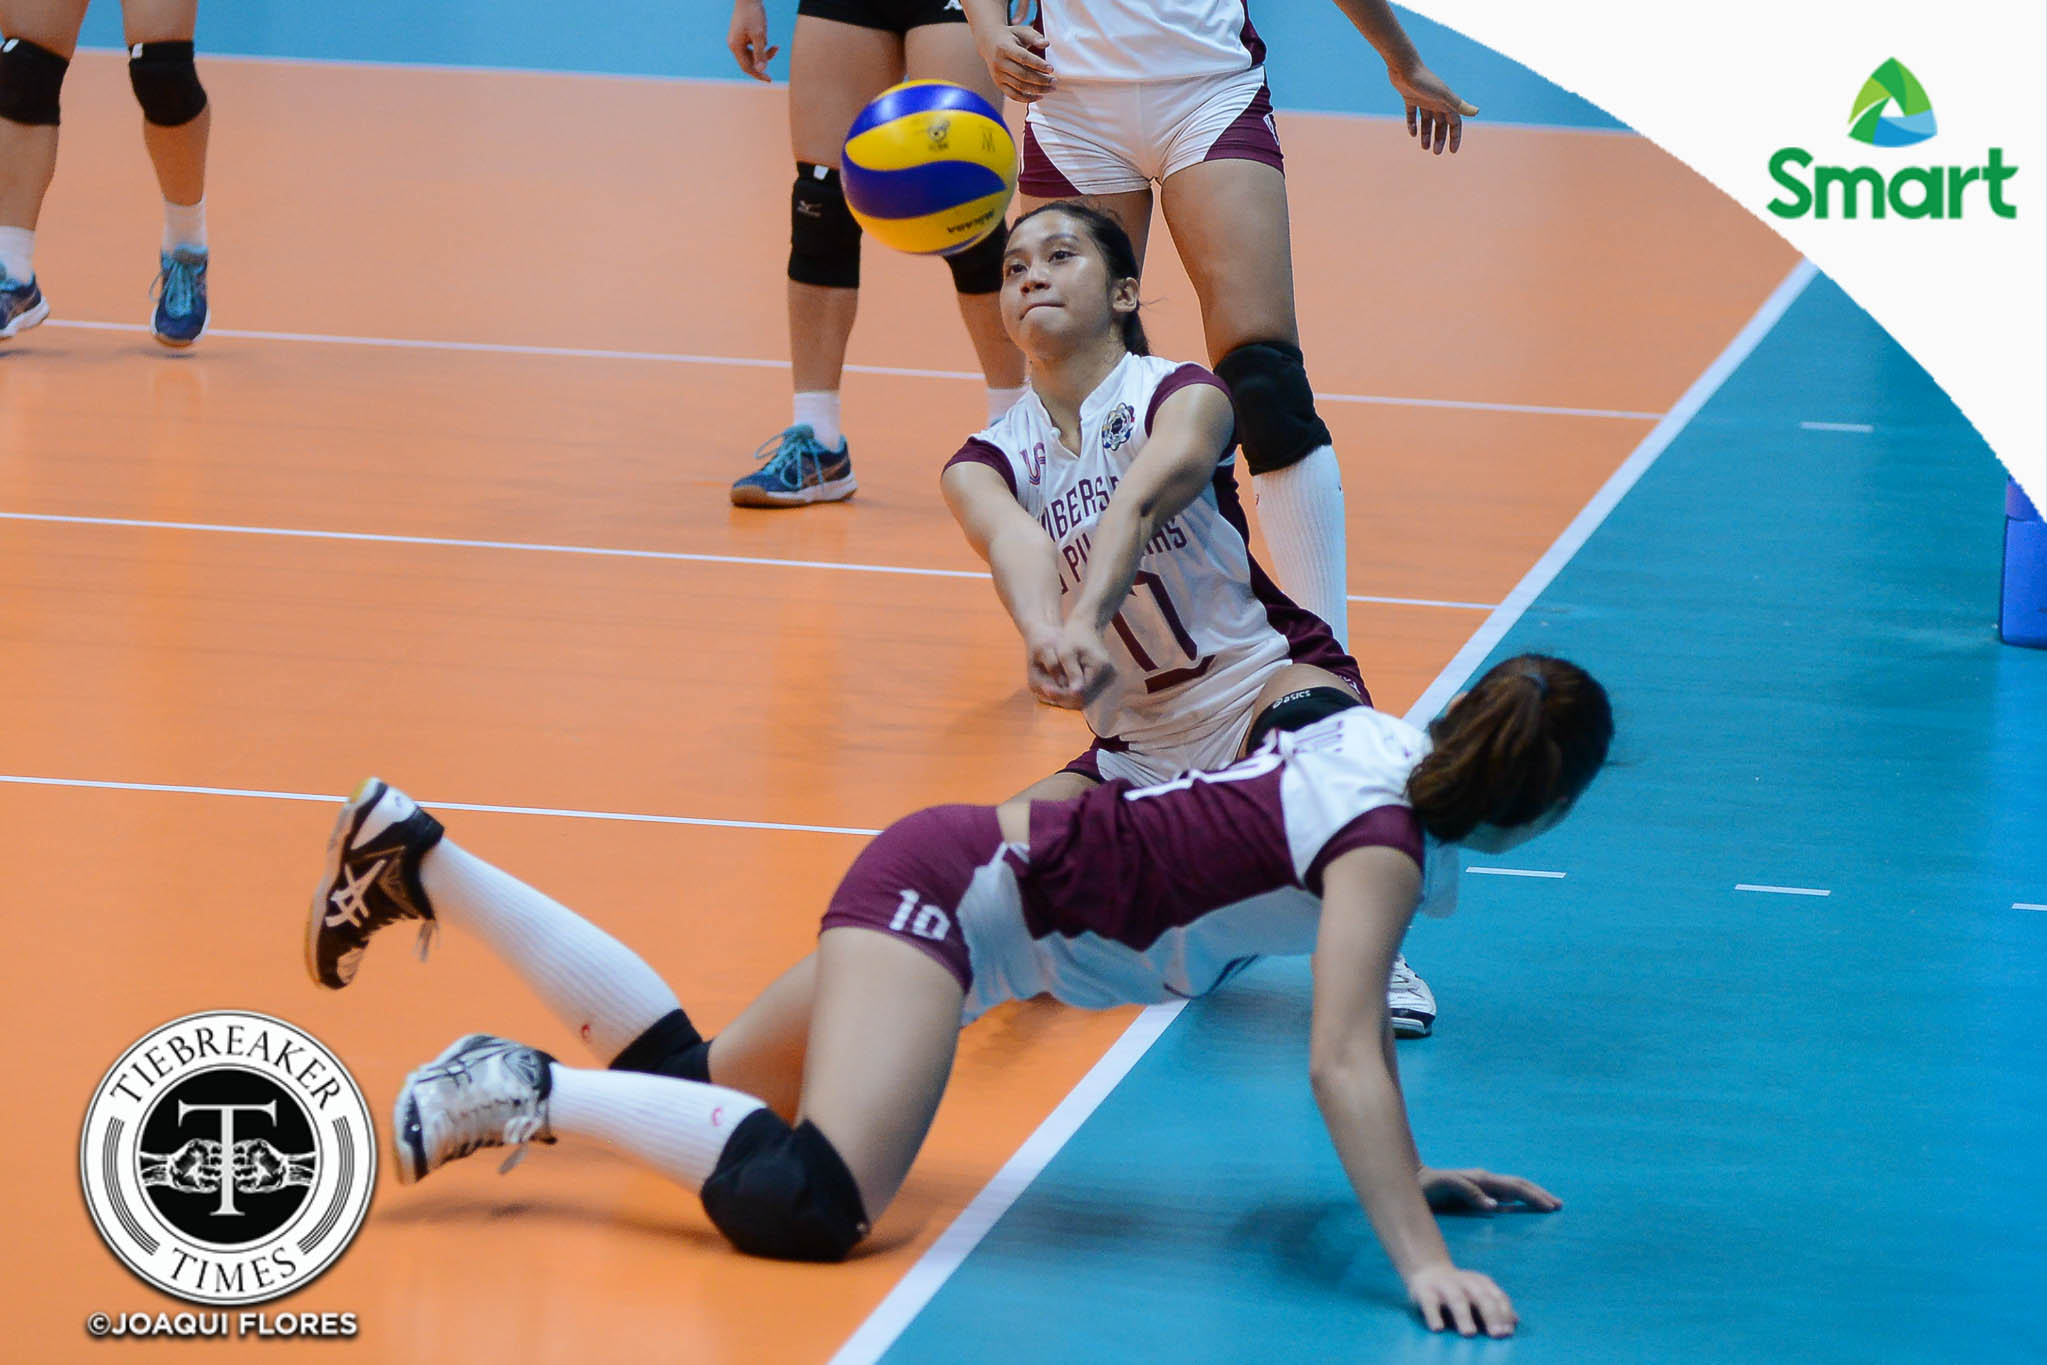 Tiebreaker Times No regrets for UP's do-everything girl Ayel Estrañero News UAAP UP Volleyball  UP Women's Volleyball UAAP Season 81 Women's Volleyball UAAP Season 81 Ayel Estranero